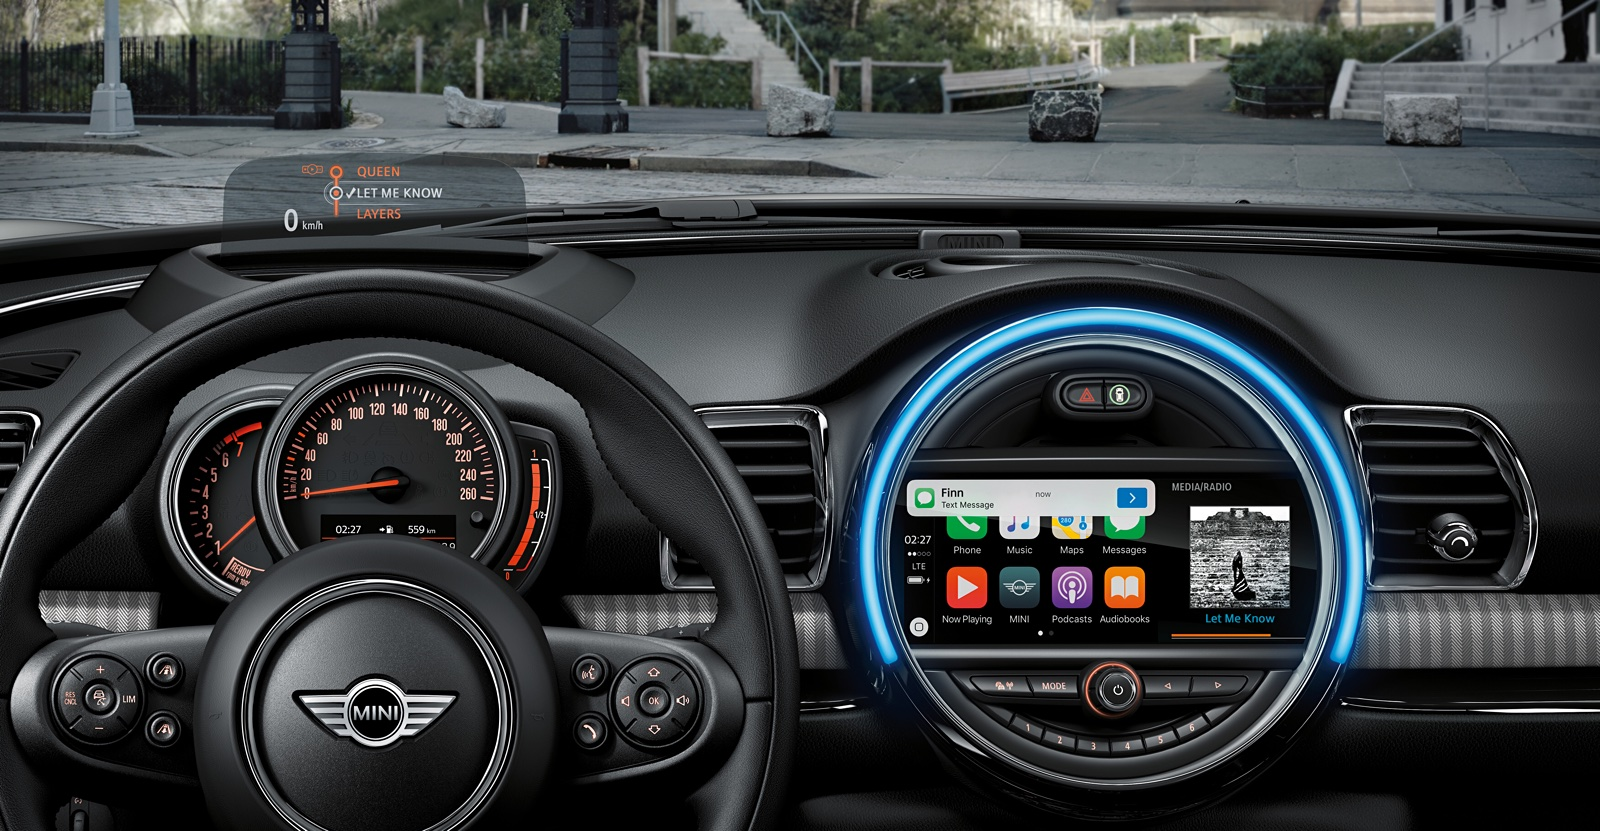 Video How-To: Apple CarPlay in a MINI - MotoringFile